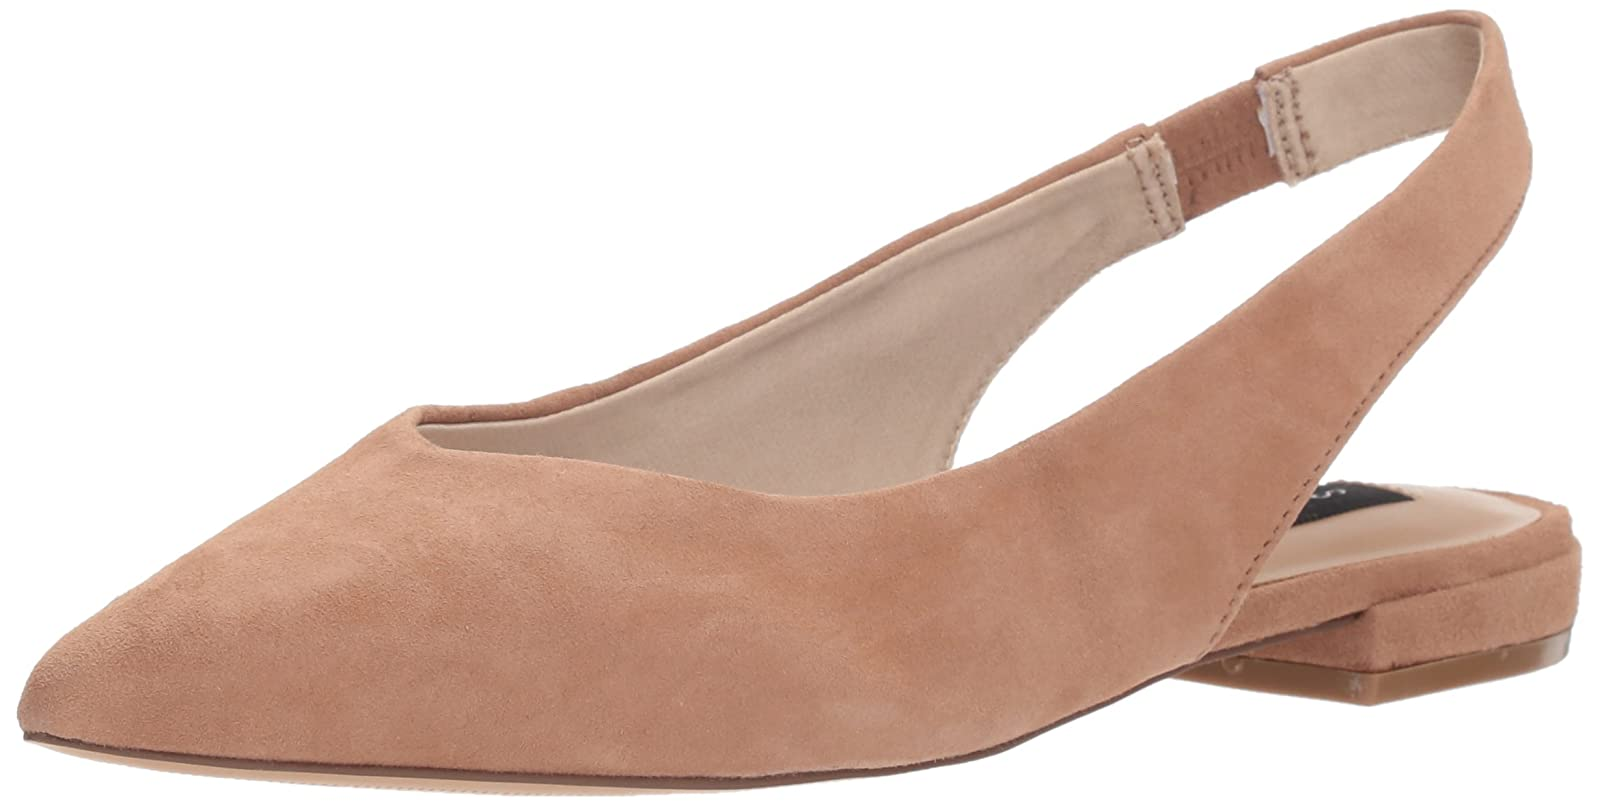 a7815aff107 HQ Images of STEVEN by Steve Madden Women s Lourdes Mary Jane Flat